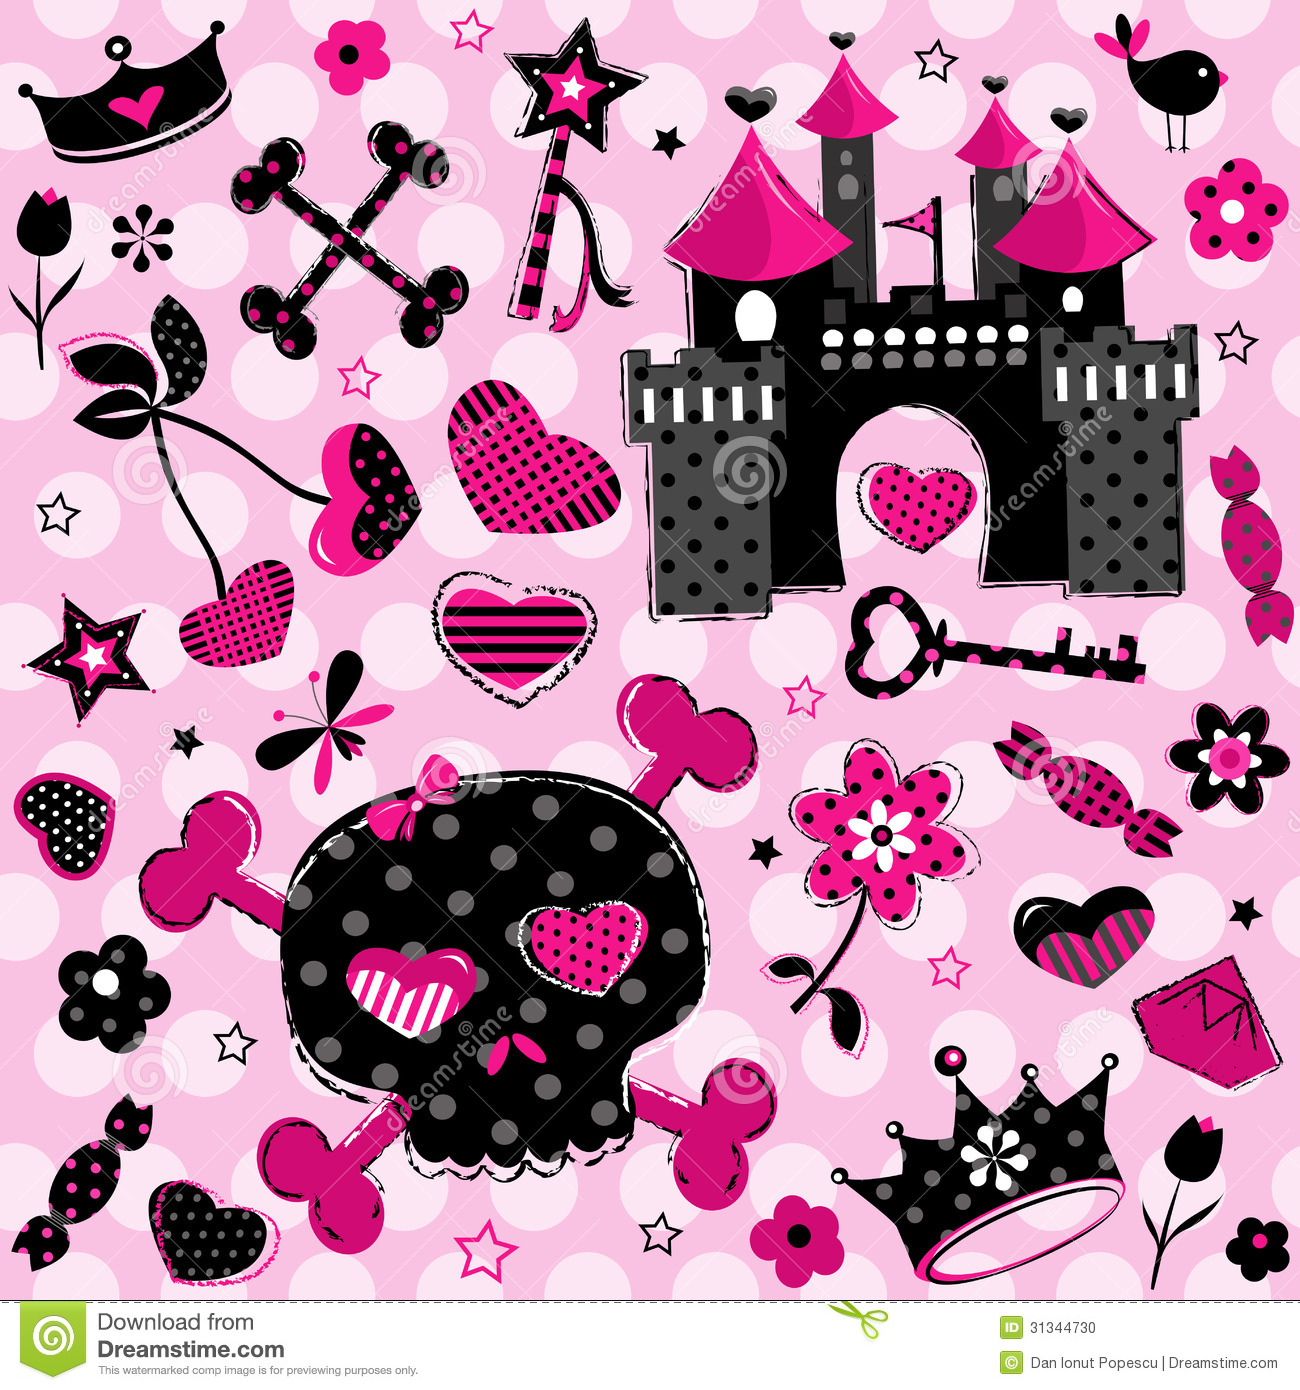 Cute Pink Butterfly Wallpaper Girlish Aggressive Cute Black And Red Elements Stock Photo